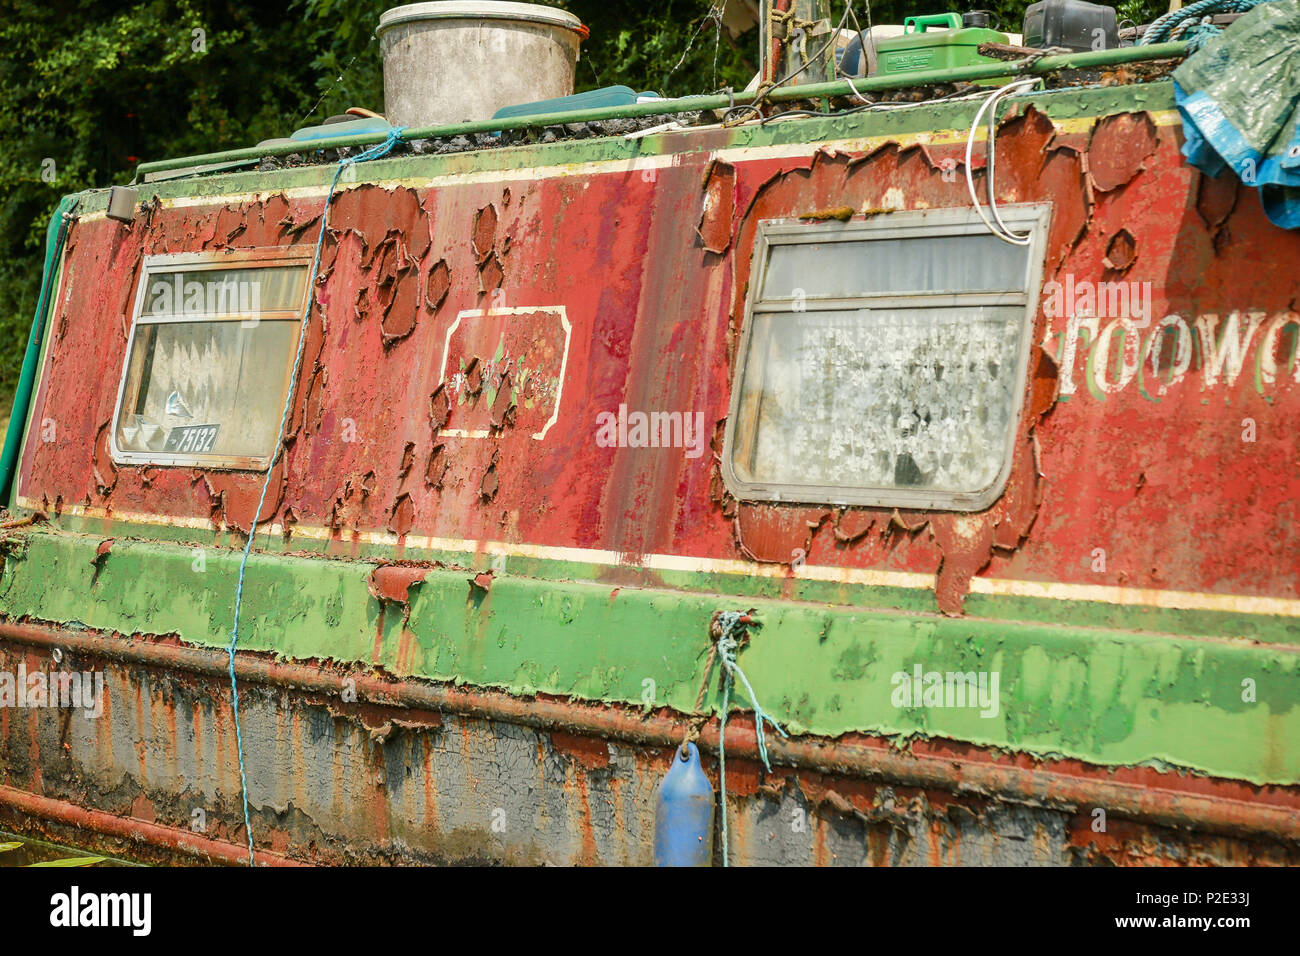 A rusting narrow boat in bad state of repair - Stock Image